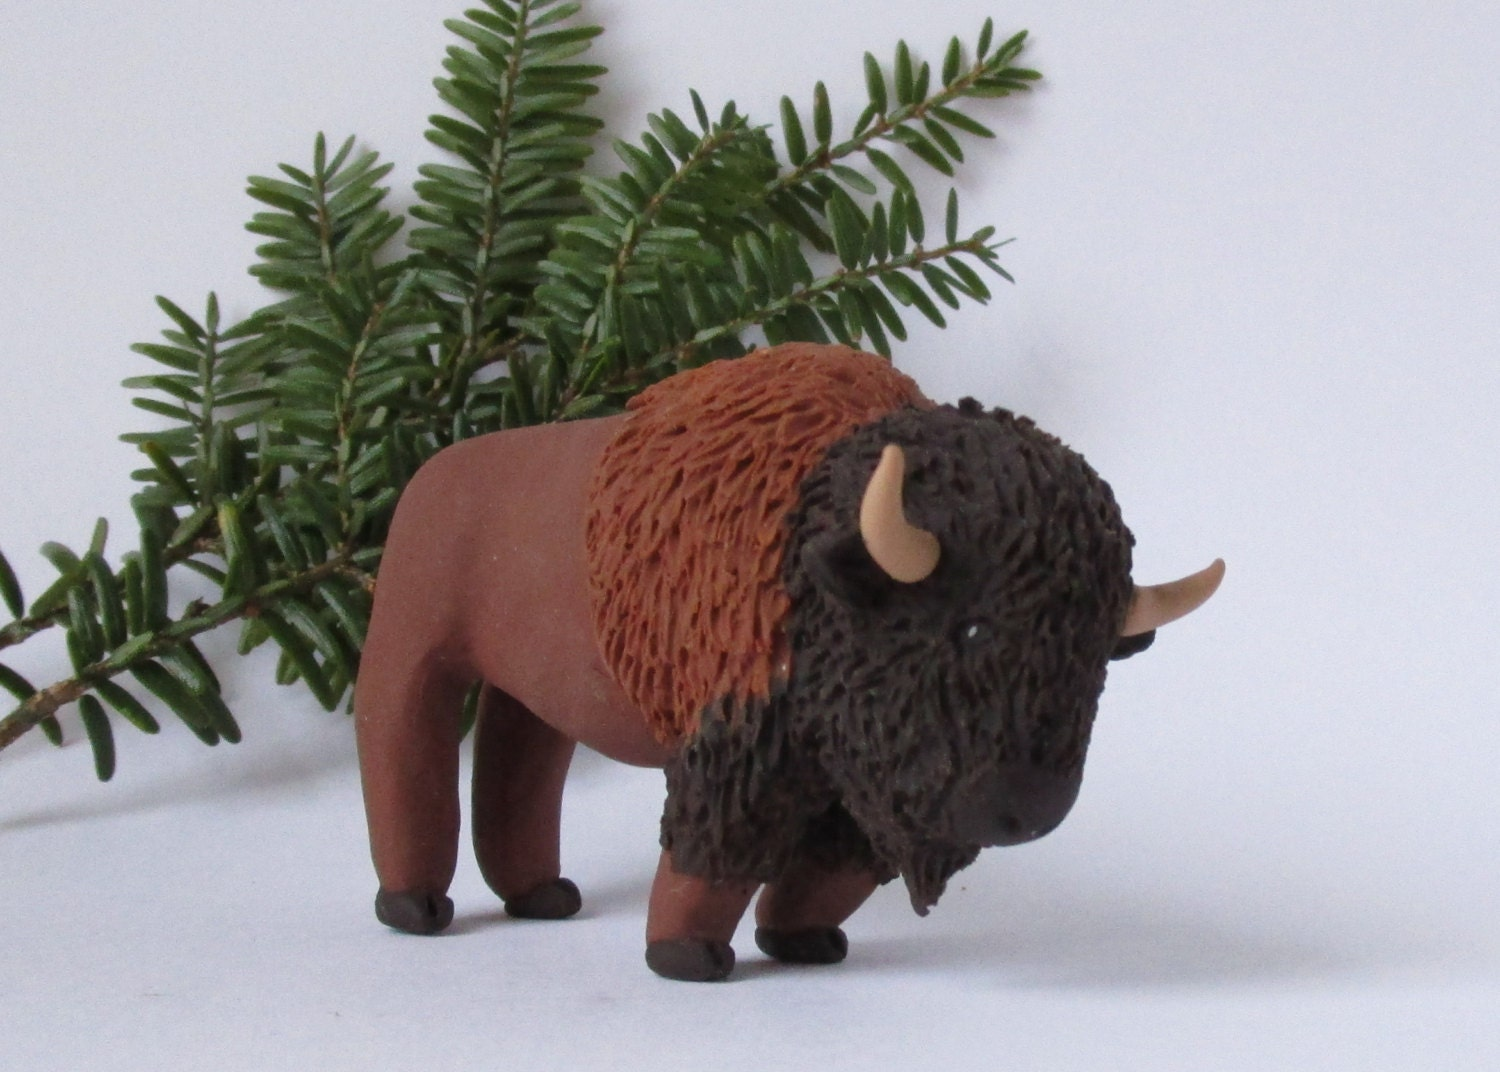 how to make a buffalo out of clay